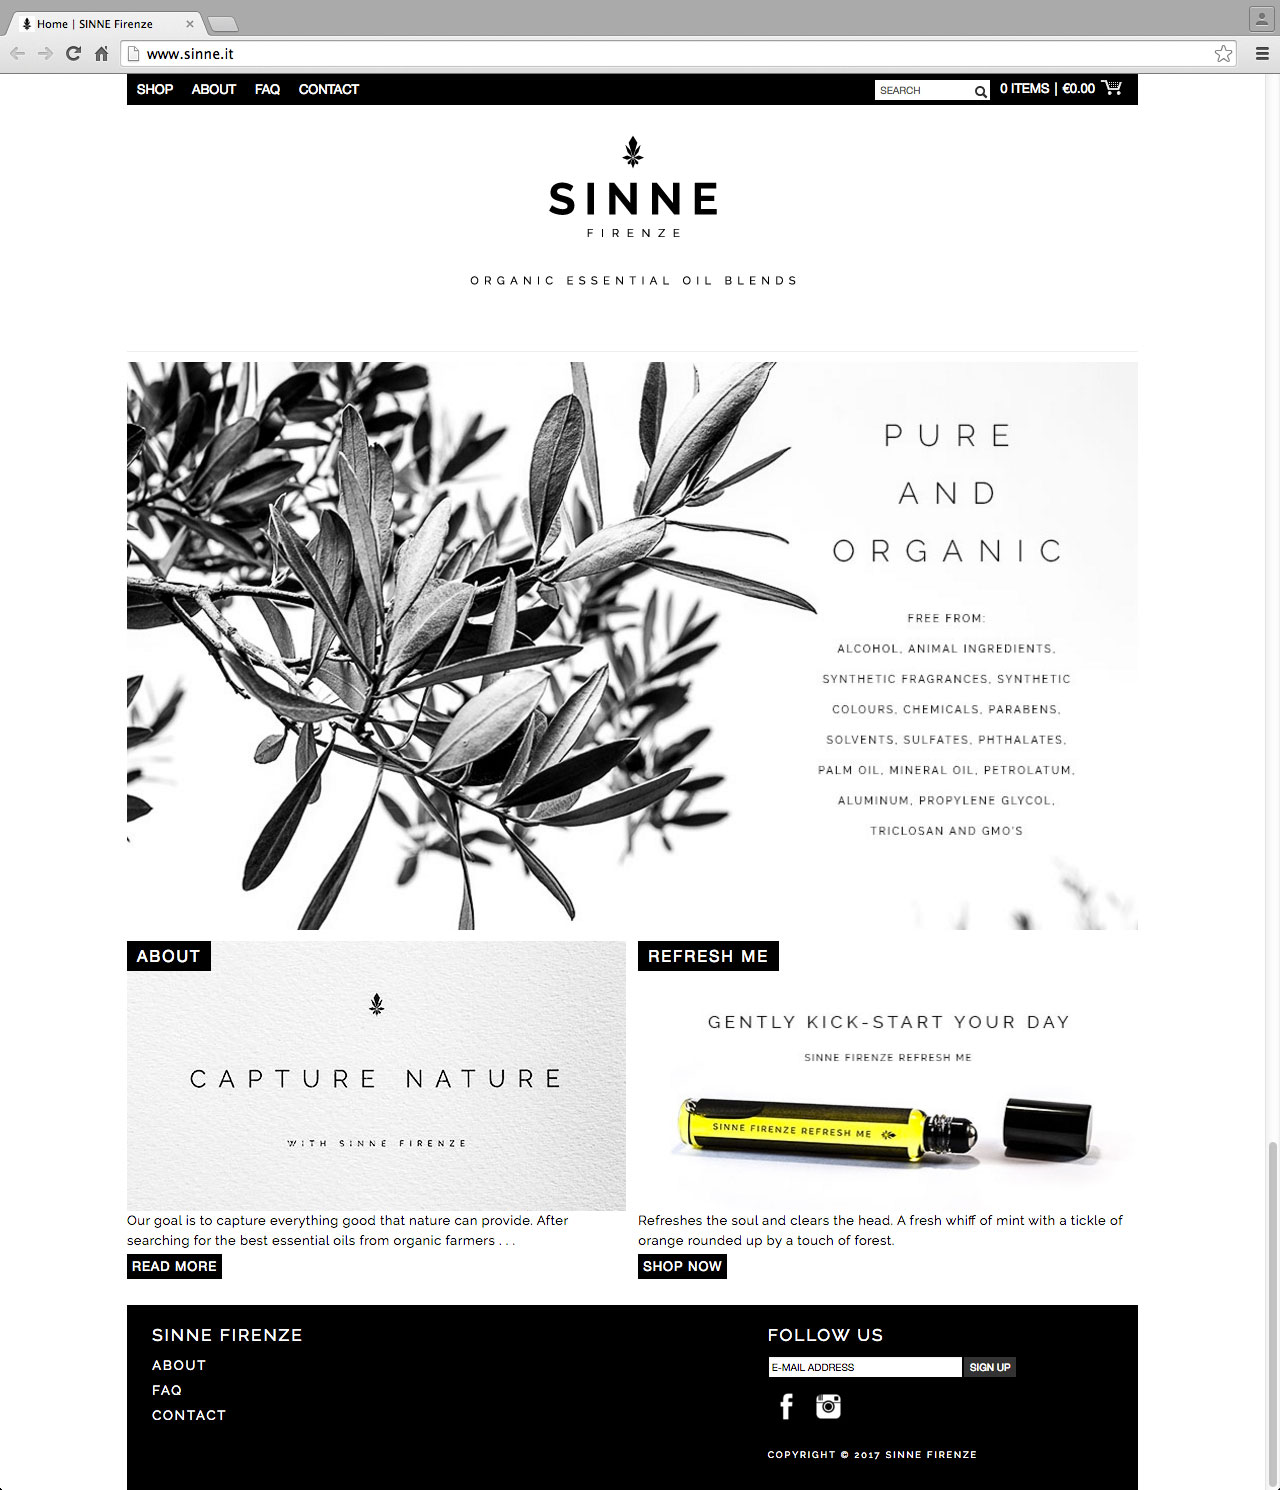 INKC studios - Graphic design studio based in Florence, Italy